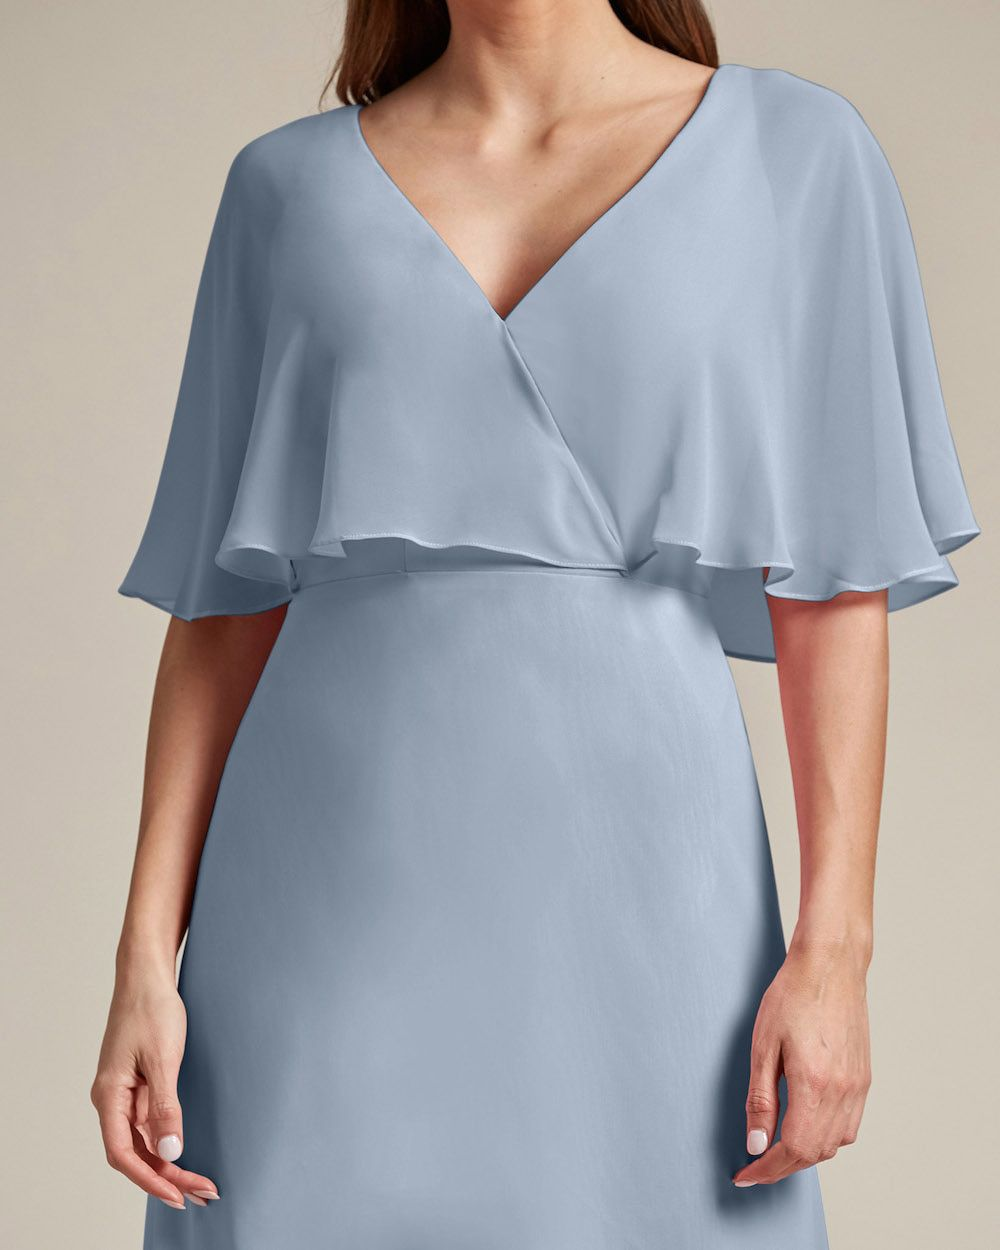 Flounder Design With Large Cut Out Back Long Skirt Bridesmaid Gown - Detail